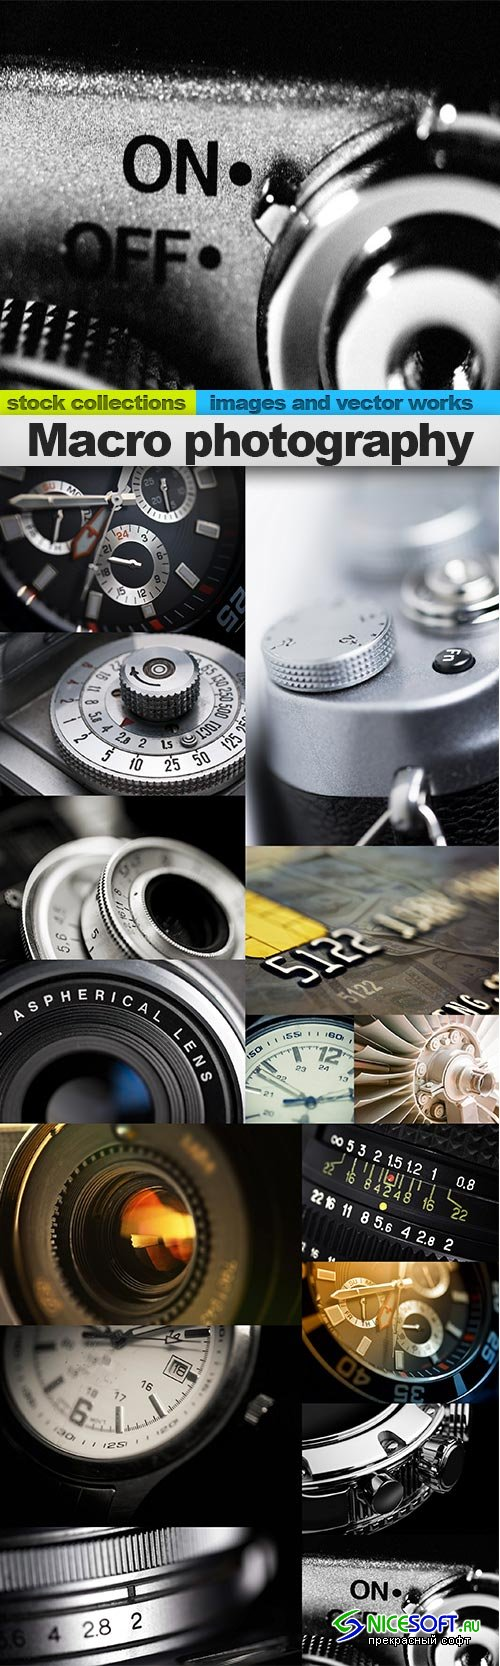 Macro photography, 15 x UHQ JPEG